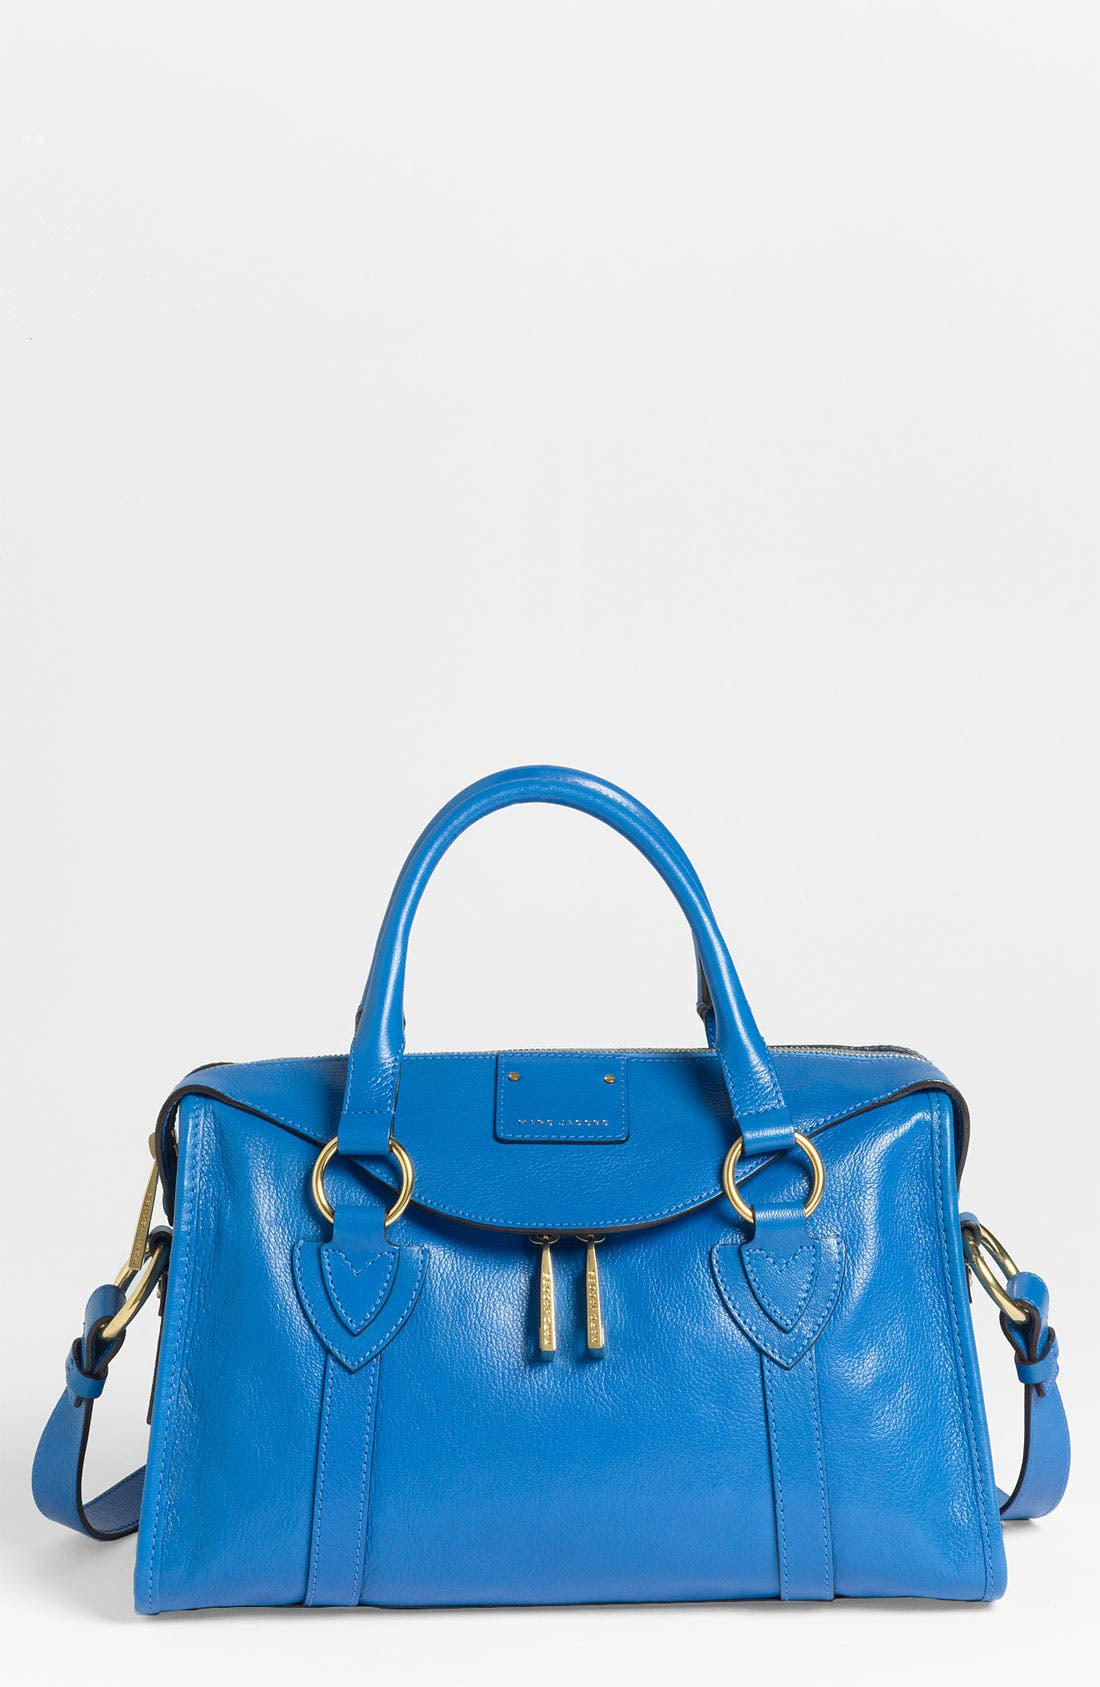 Alternate Image 1 Selected - MARC JACOBS 'Wellington - Small Fulton' Leather Satchel